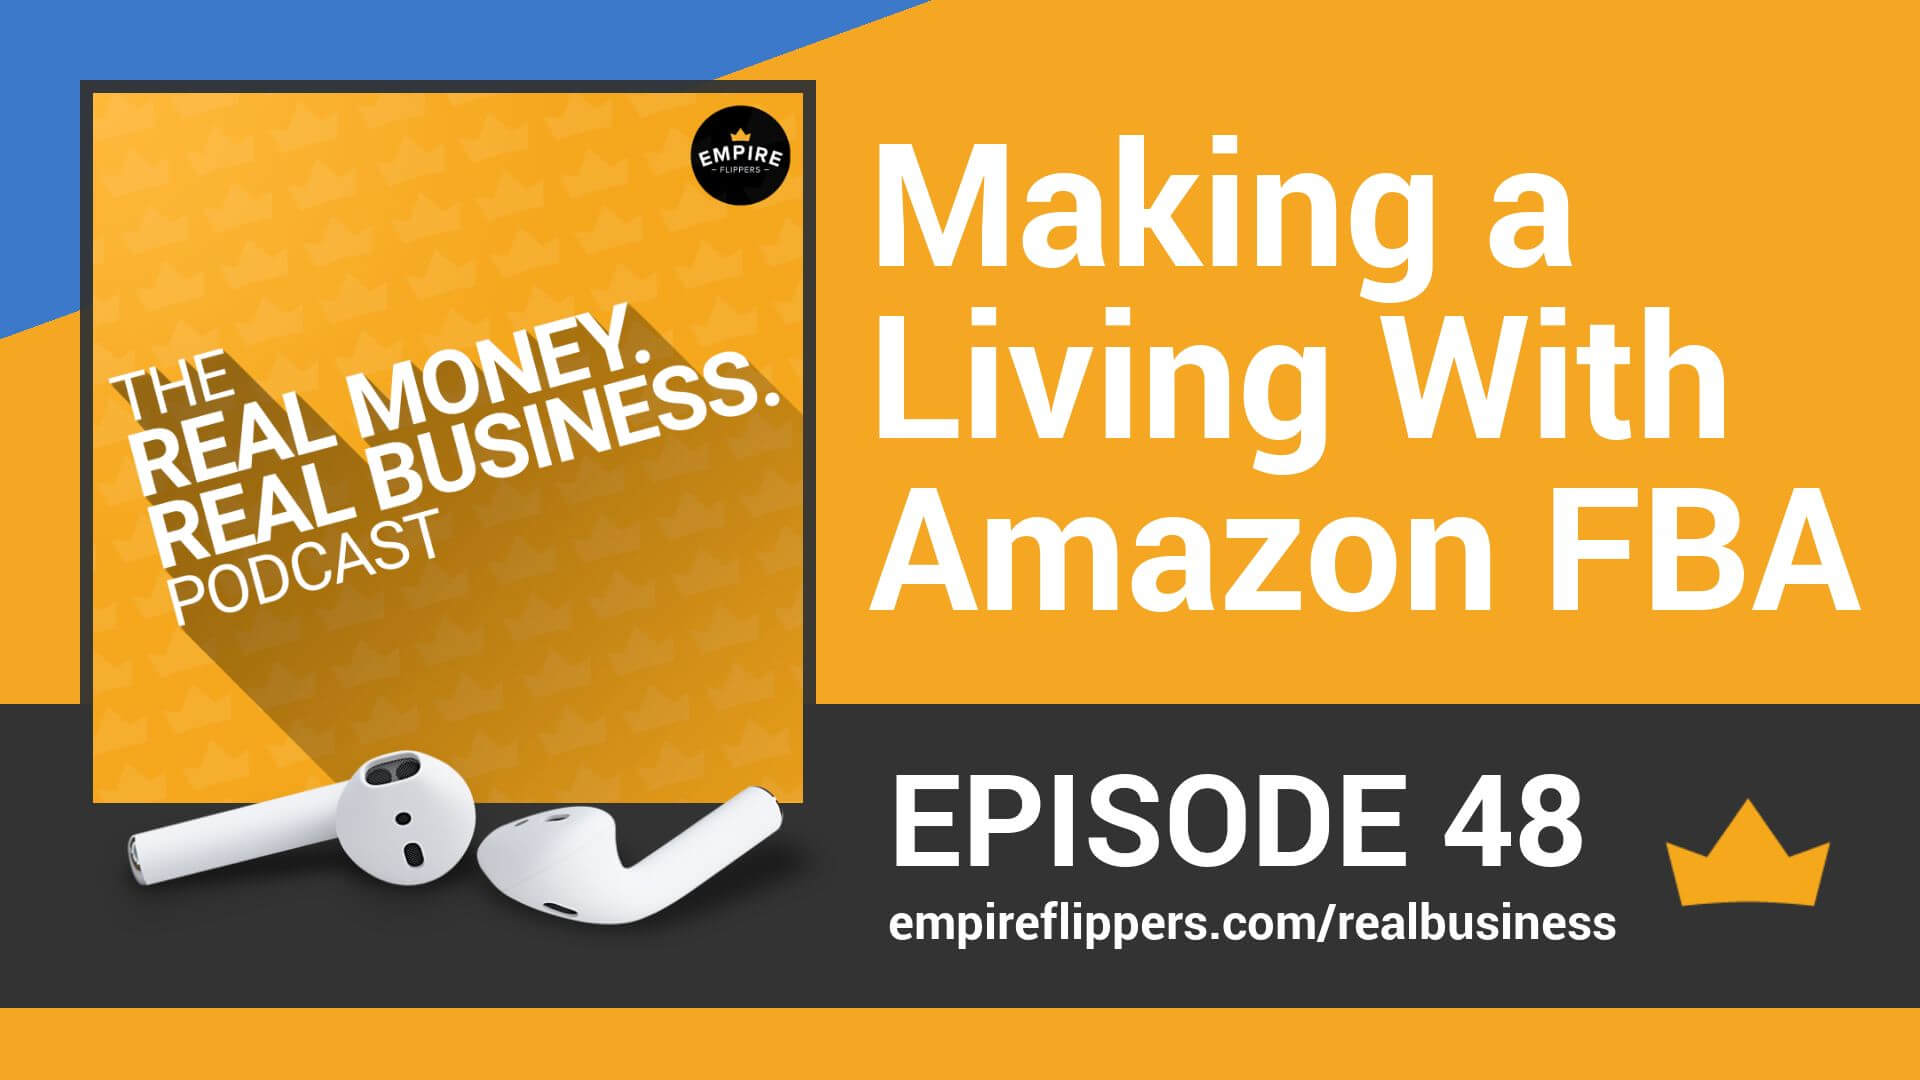 Making a Living With Amazon FBA